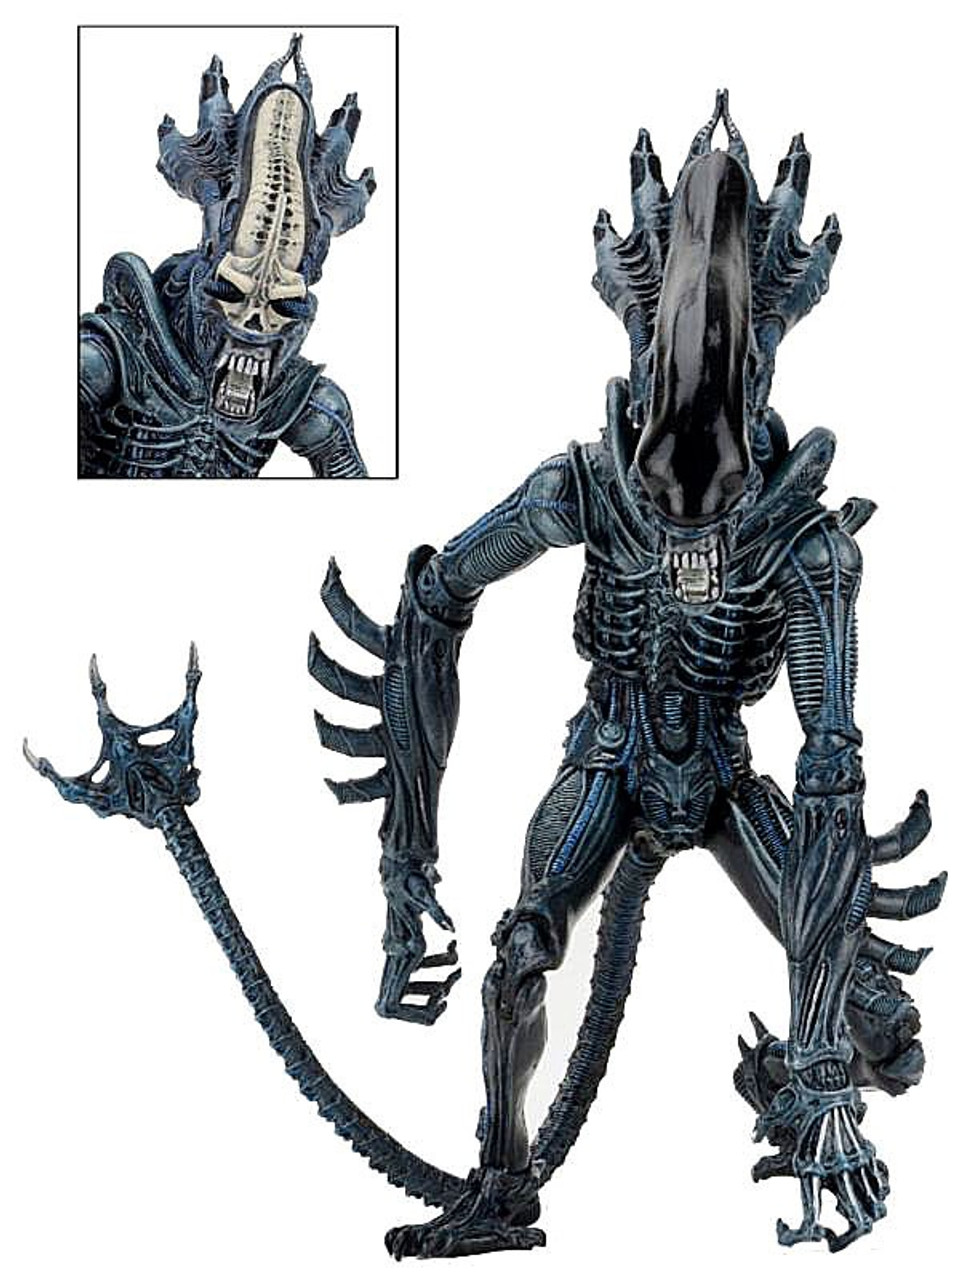 NECA Aliens Series 10 Gorilla Action Figure